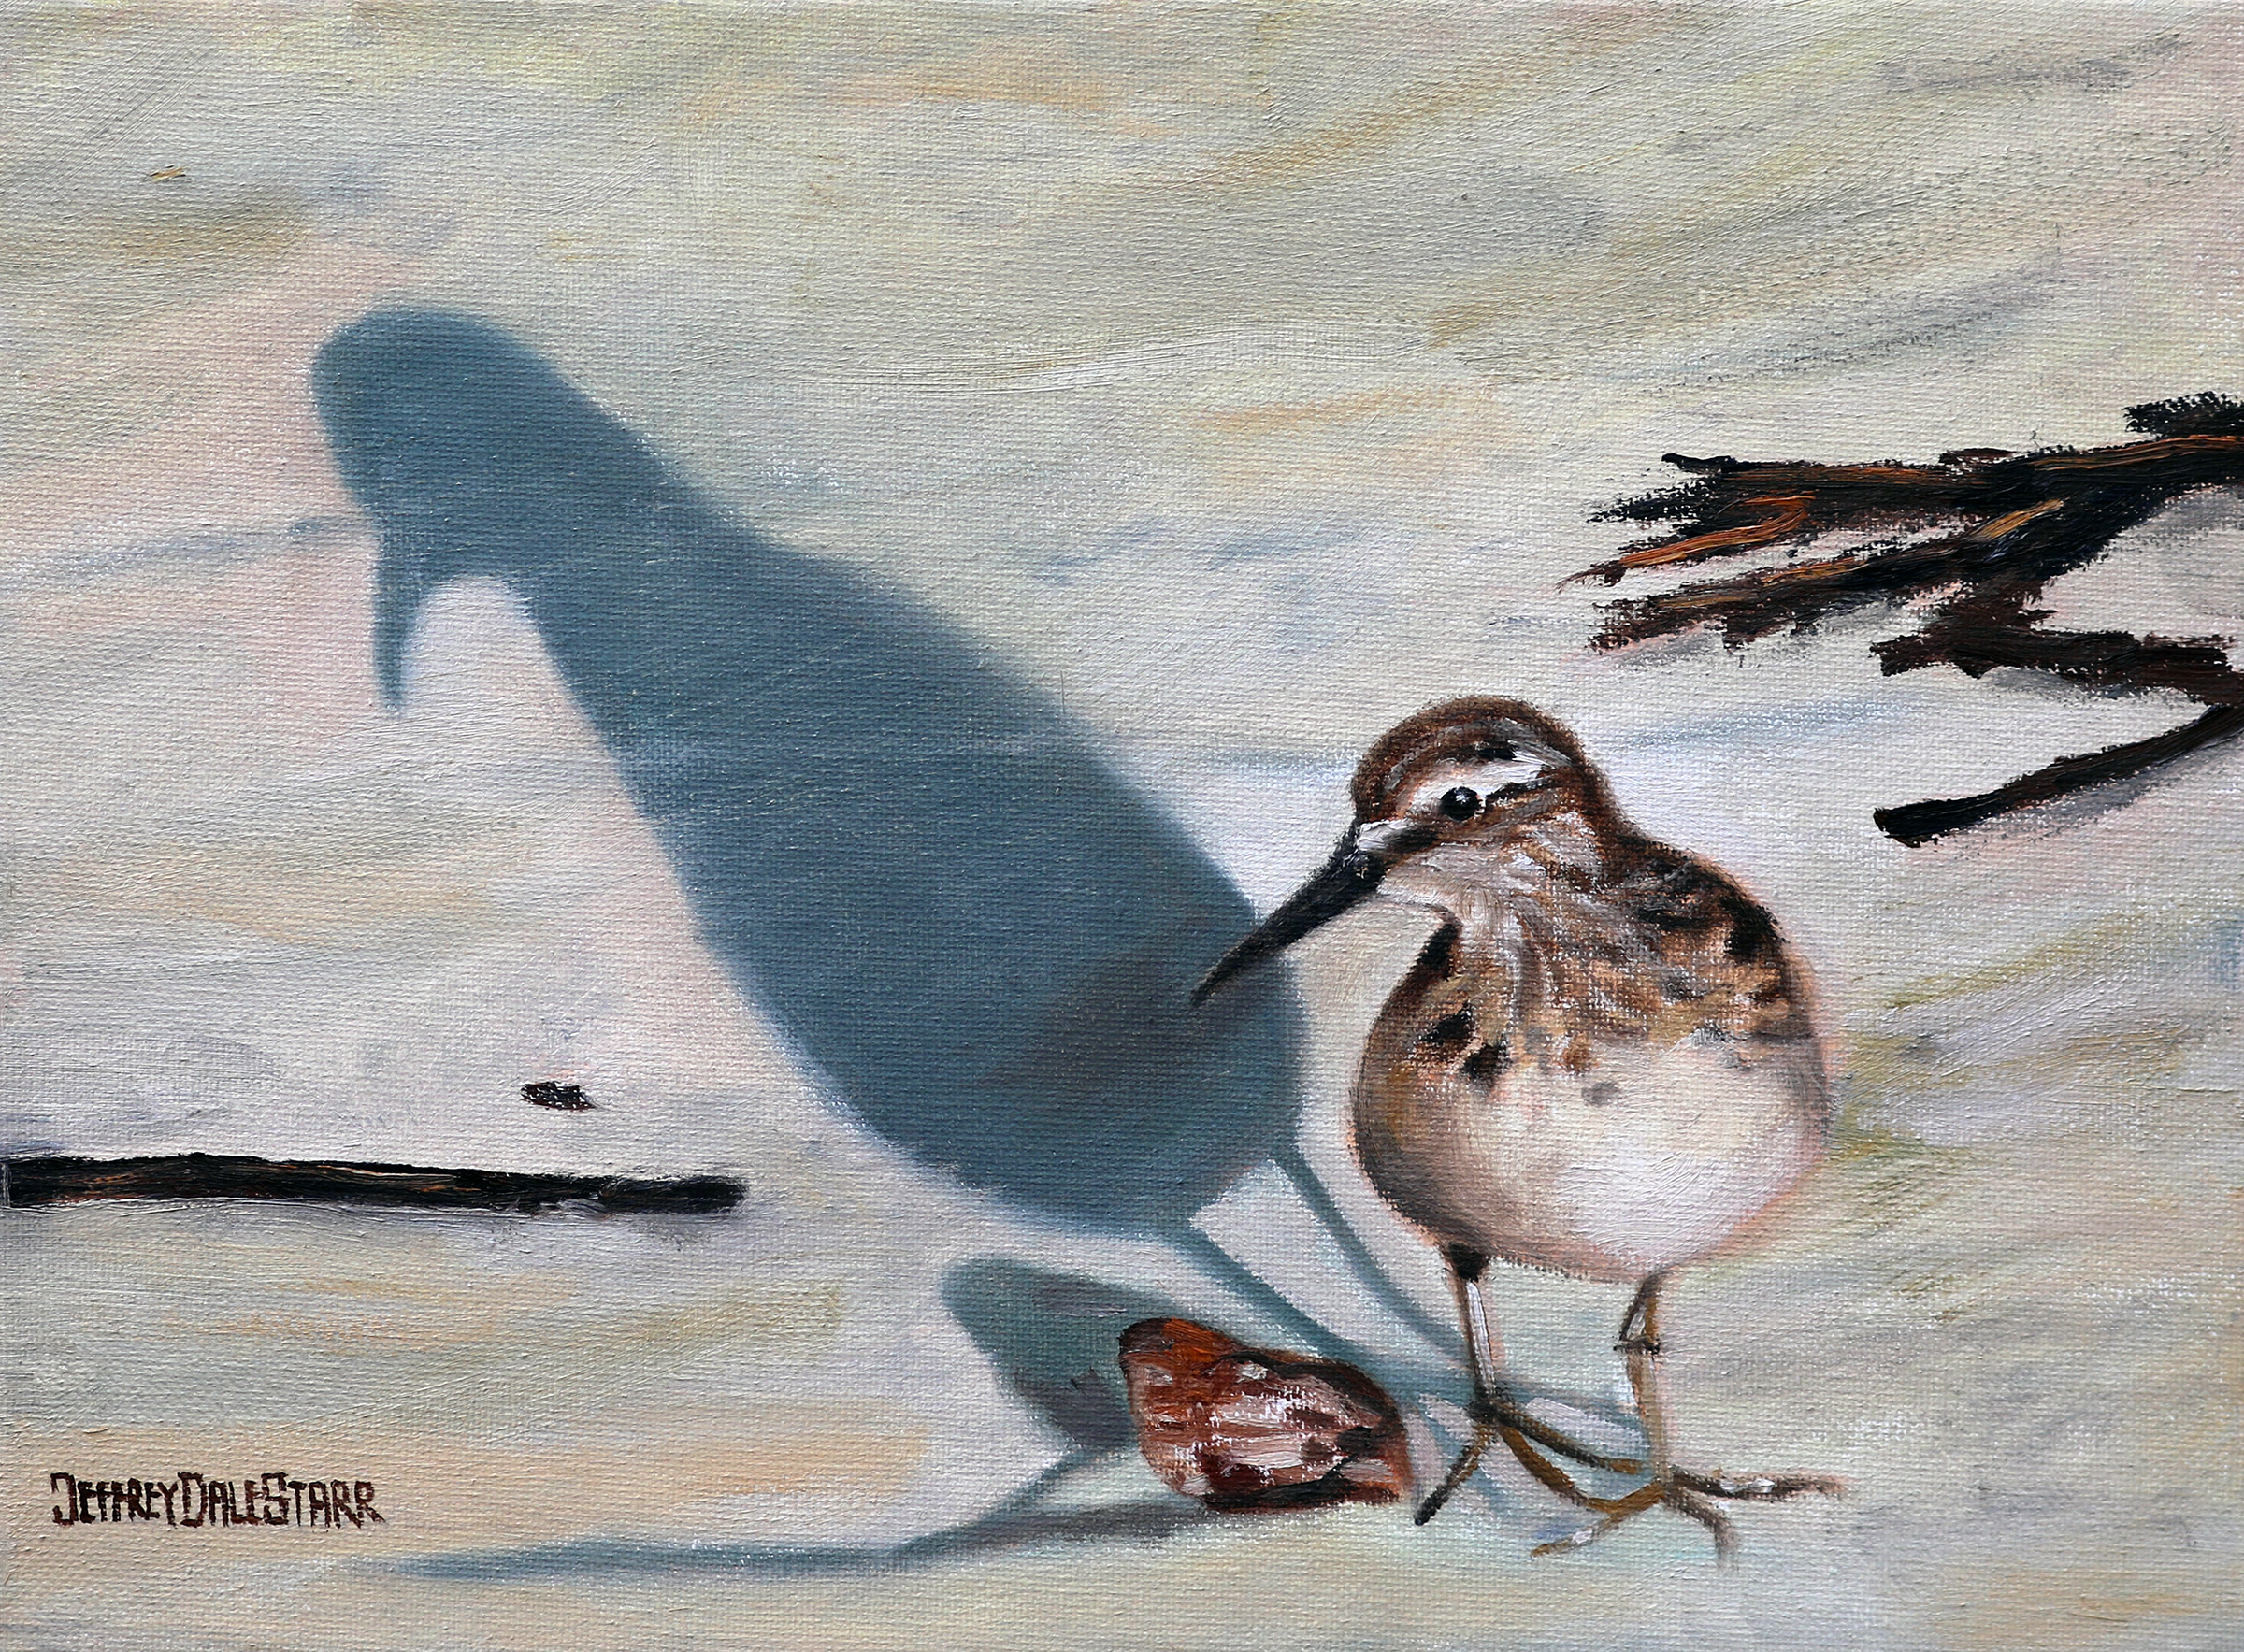 oil painting of sandpiper and shell on cape cod beach by american artist jeffrey dale starr